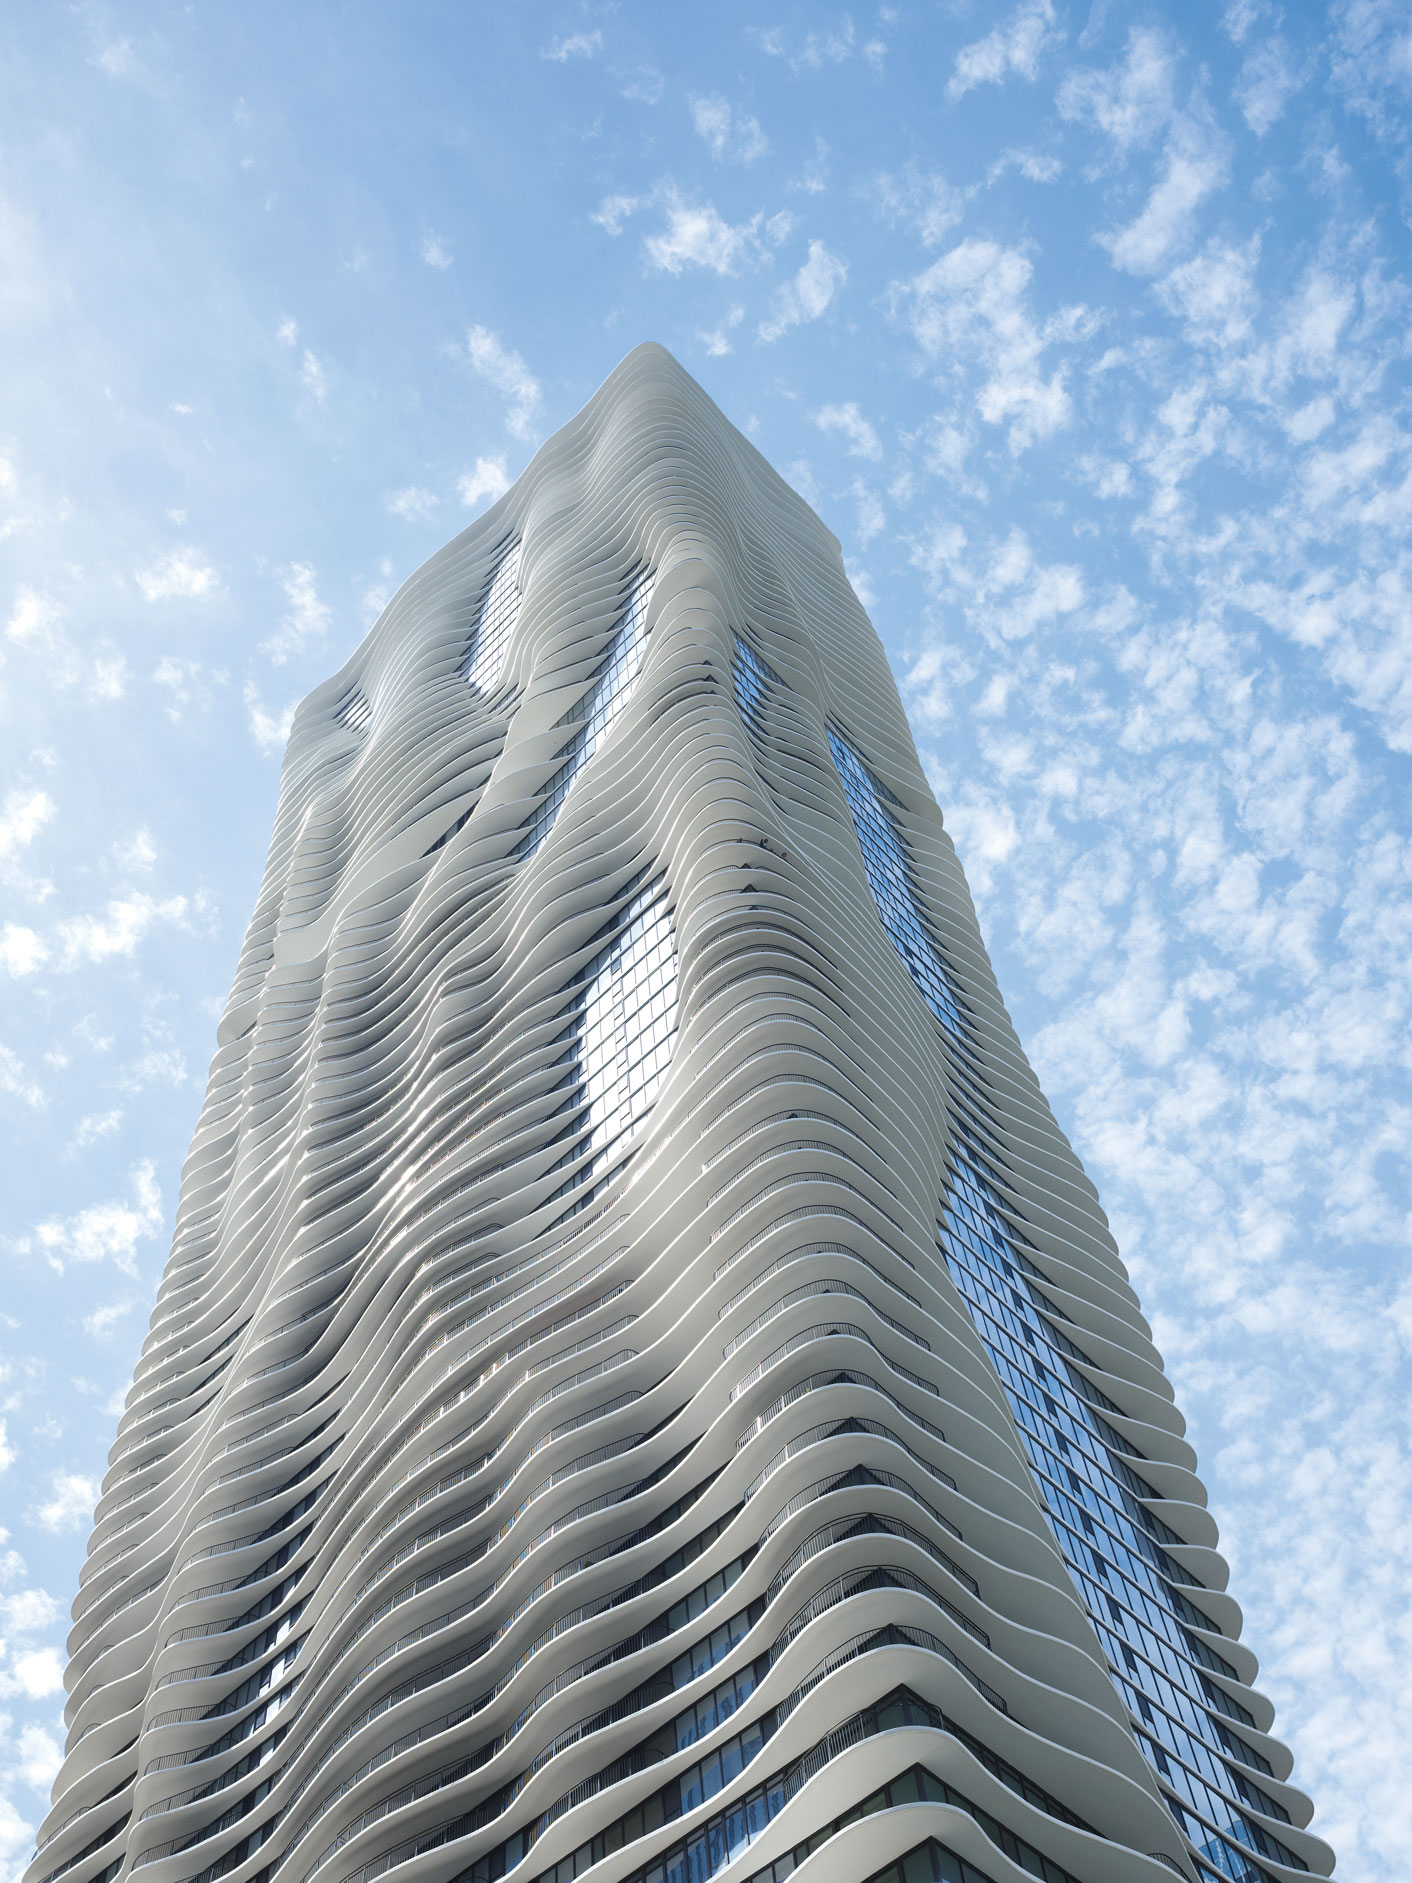 Studio Gang, Aqua Tower, Chicago, Illinois, USA, 2010. 